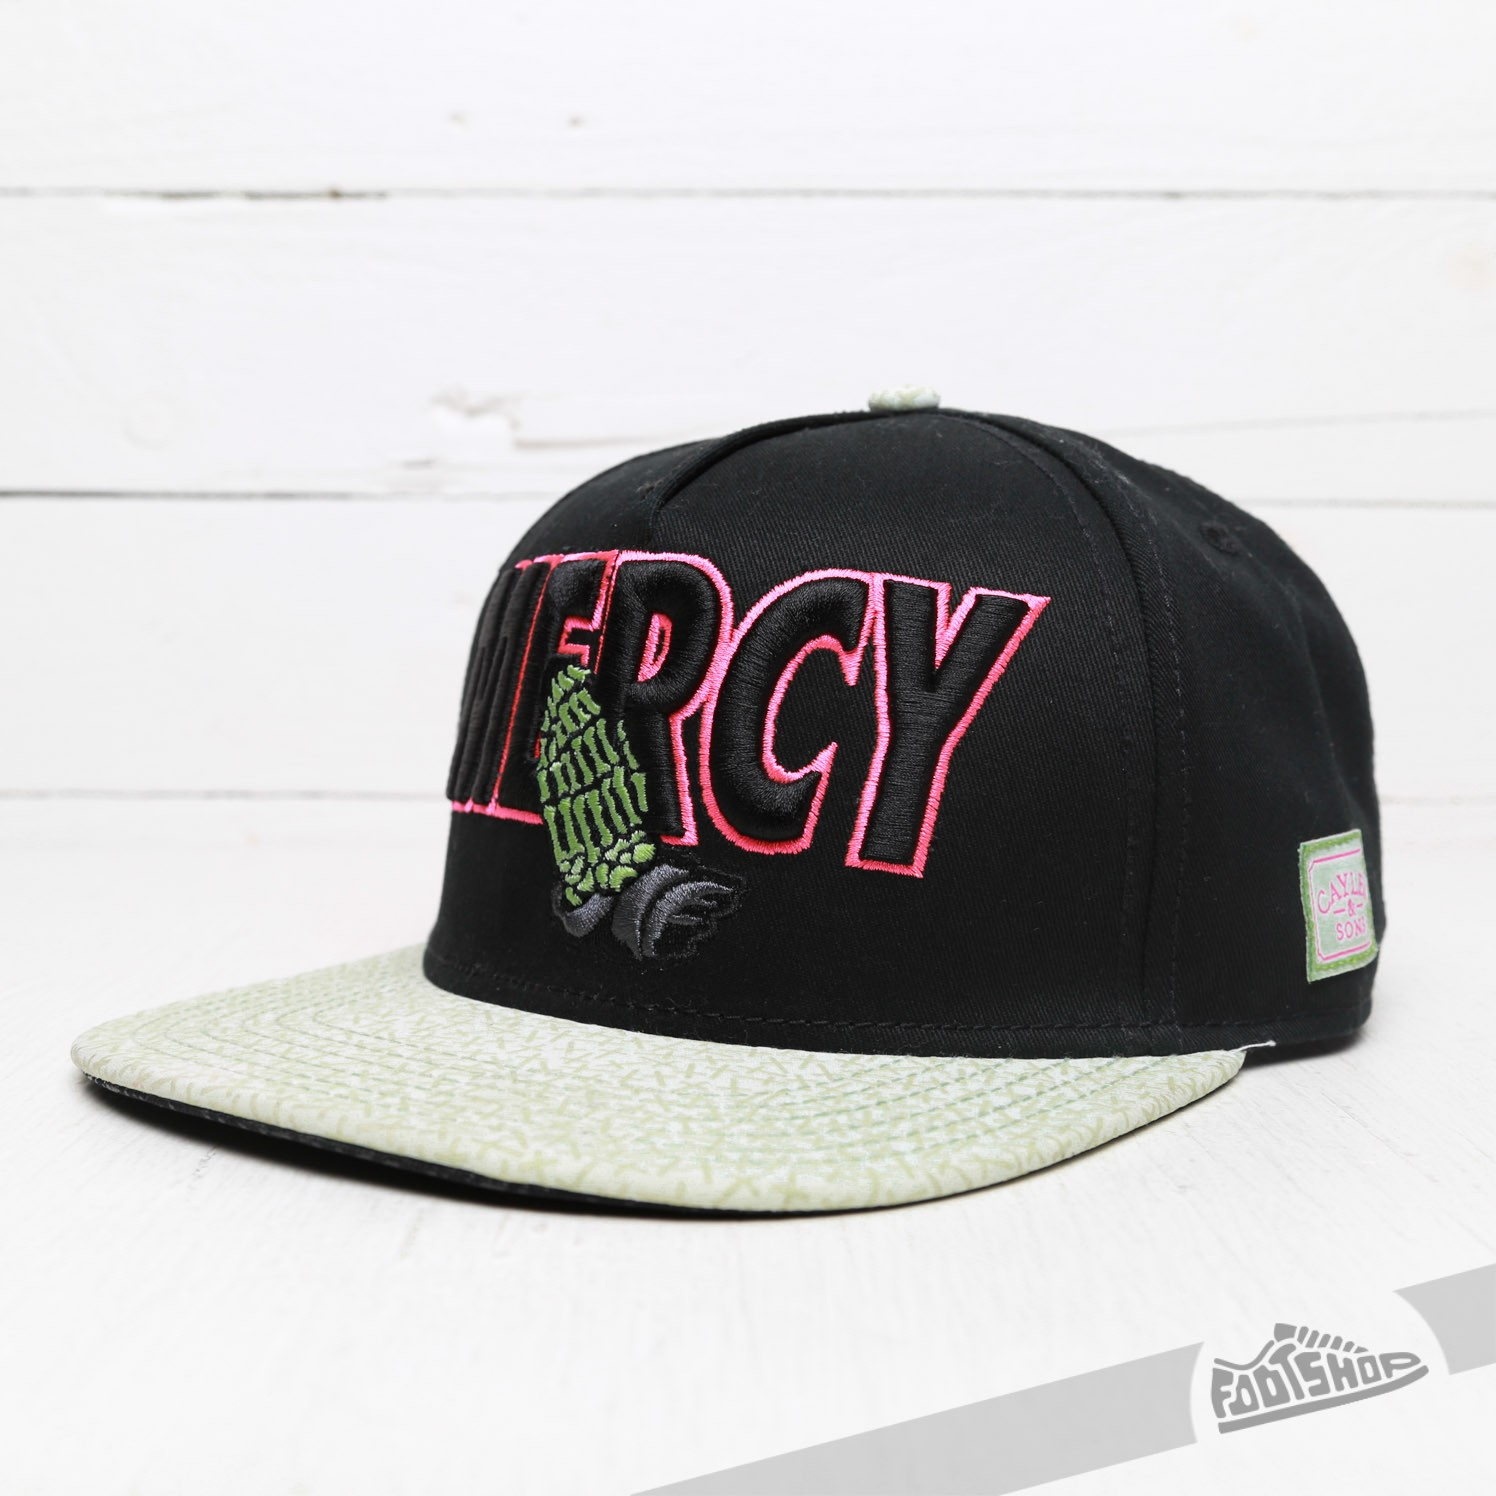 Cayler & Sons Mercy Cap Black/ Pink/ Green - 6638